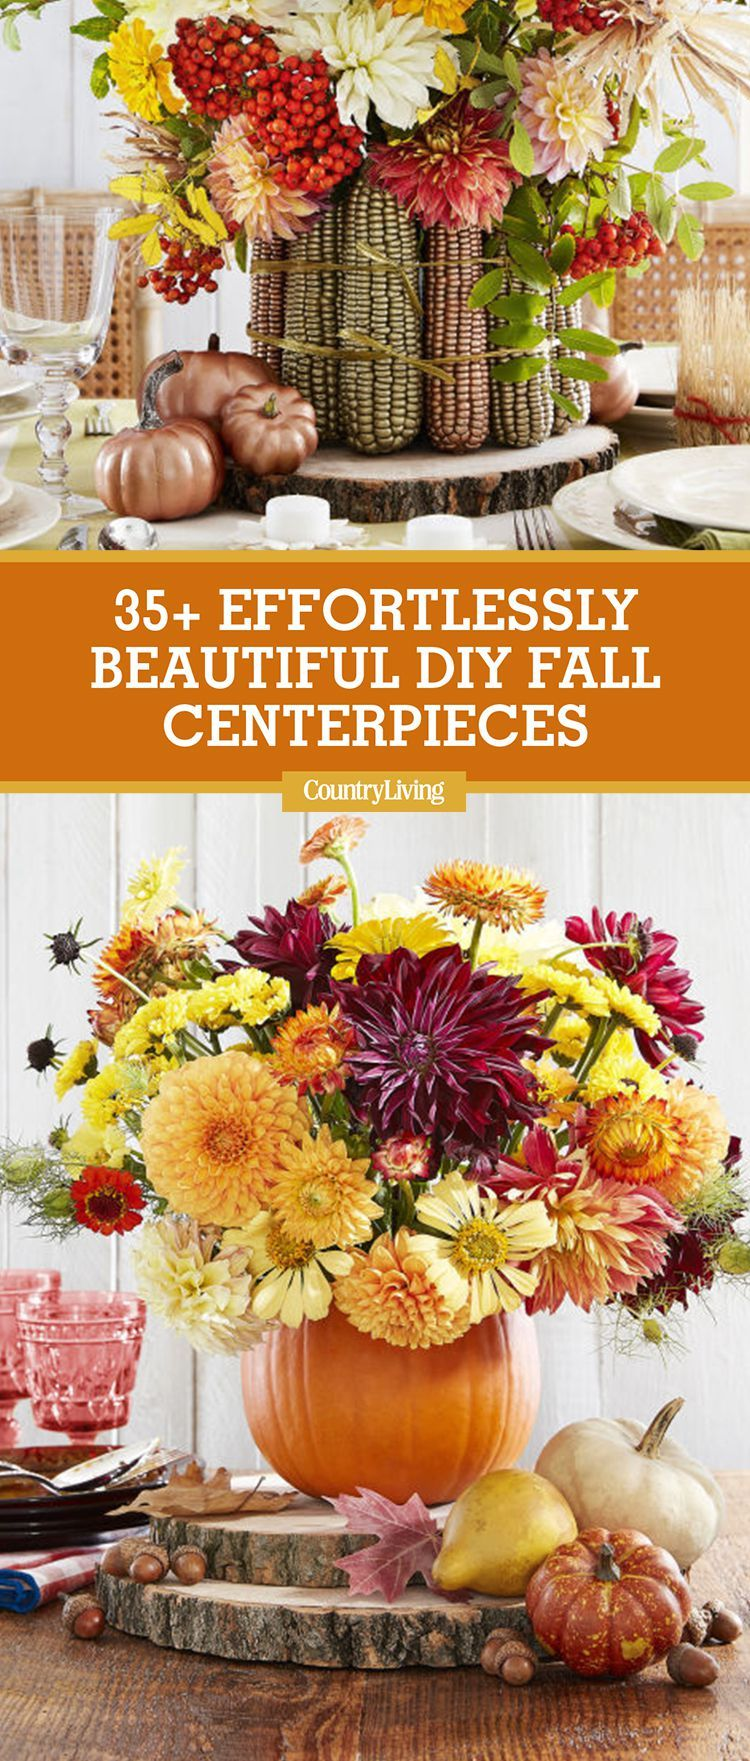 43 gourd geous fall centerpieces to diy this weekend fall table rh pinterest com